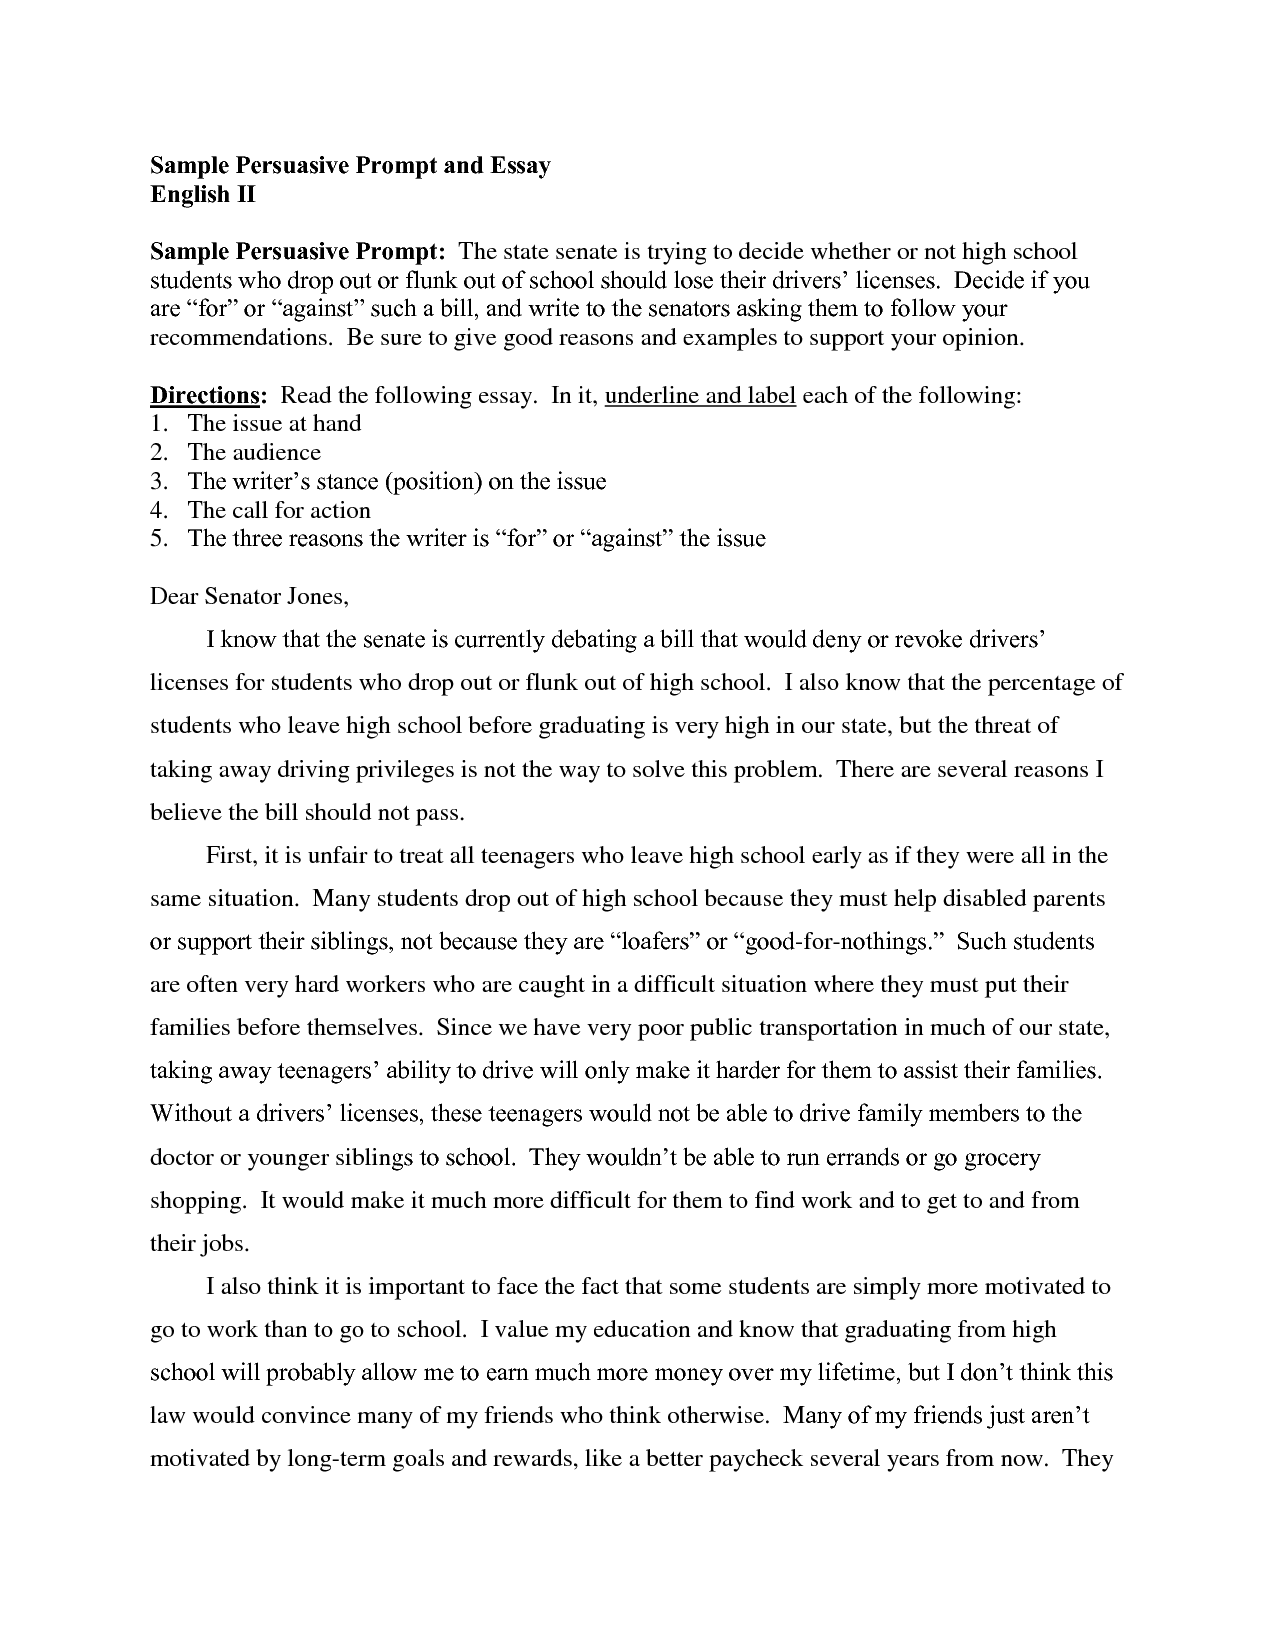 008 Persuasive Essay Topics For High School Sample Ideas Highschool Students Good Prompt Funny Easy Fun List Of Seniors Writing English Free Research Paper About Stunning Education Full